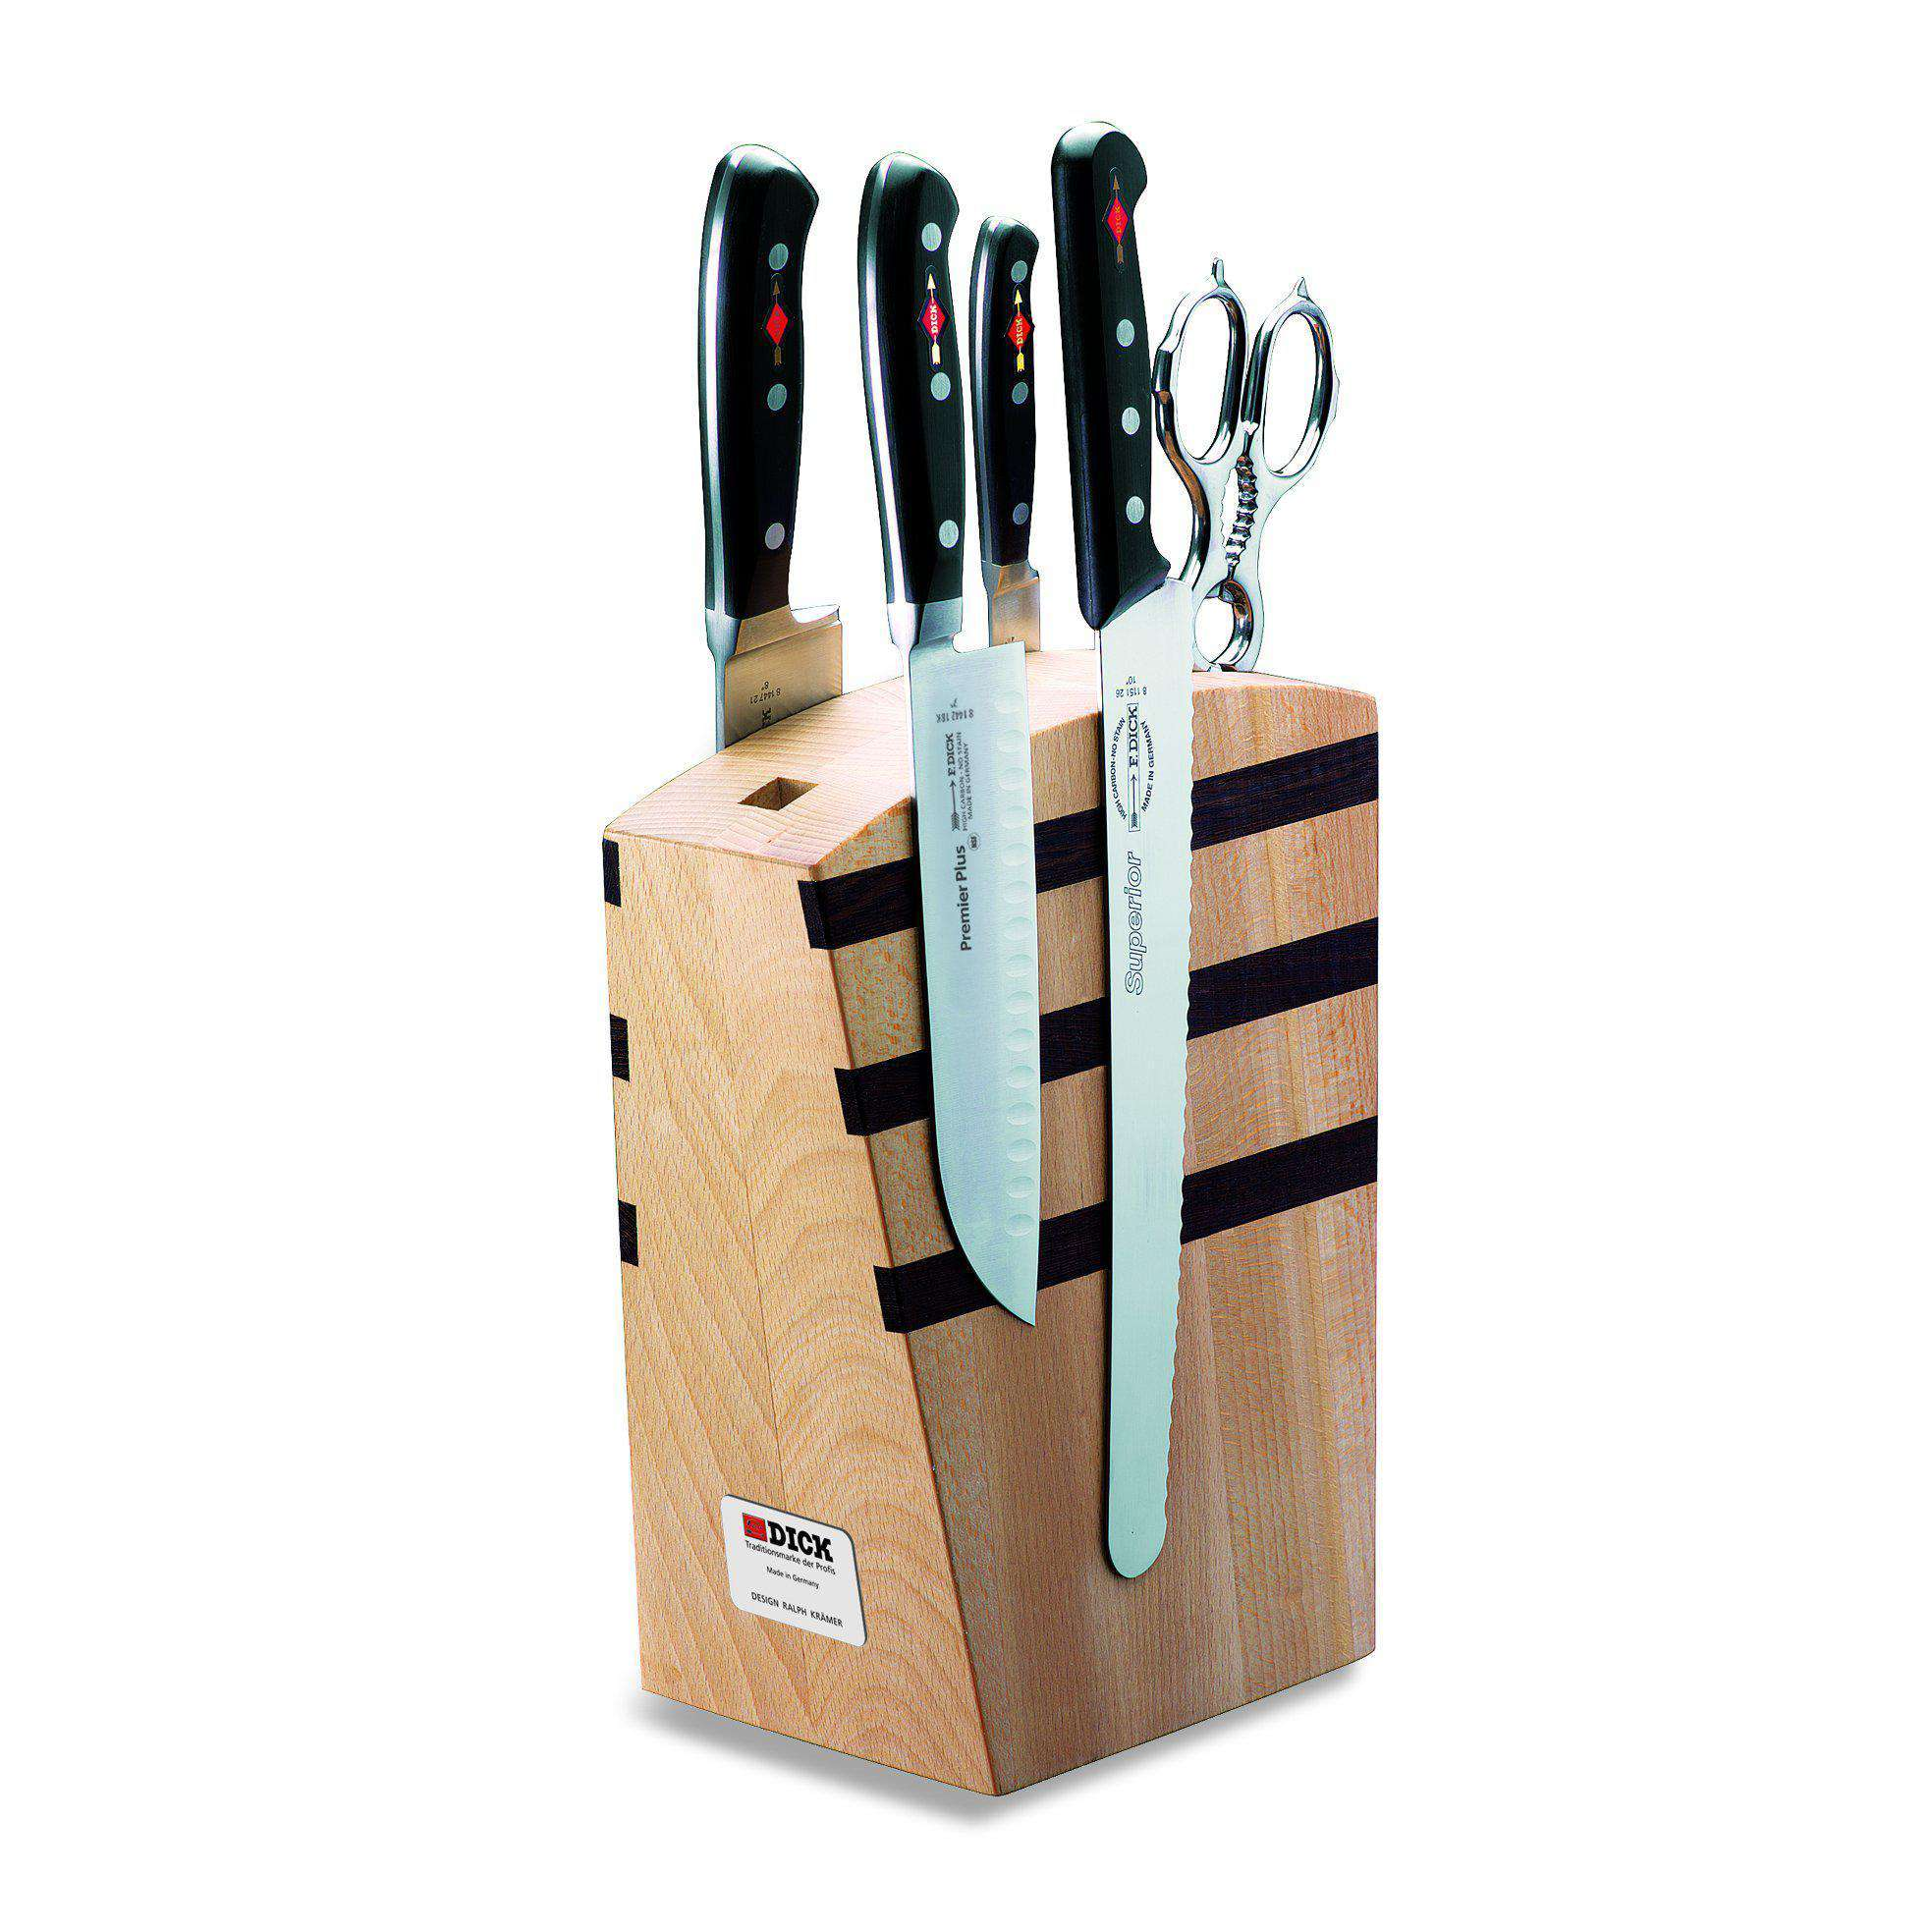 F. Dick Premier Plus磁性木刀架5 Pc Set- House of Knives